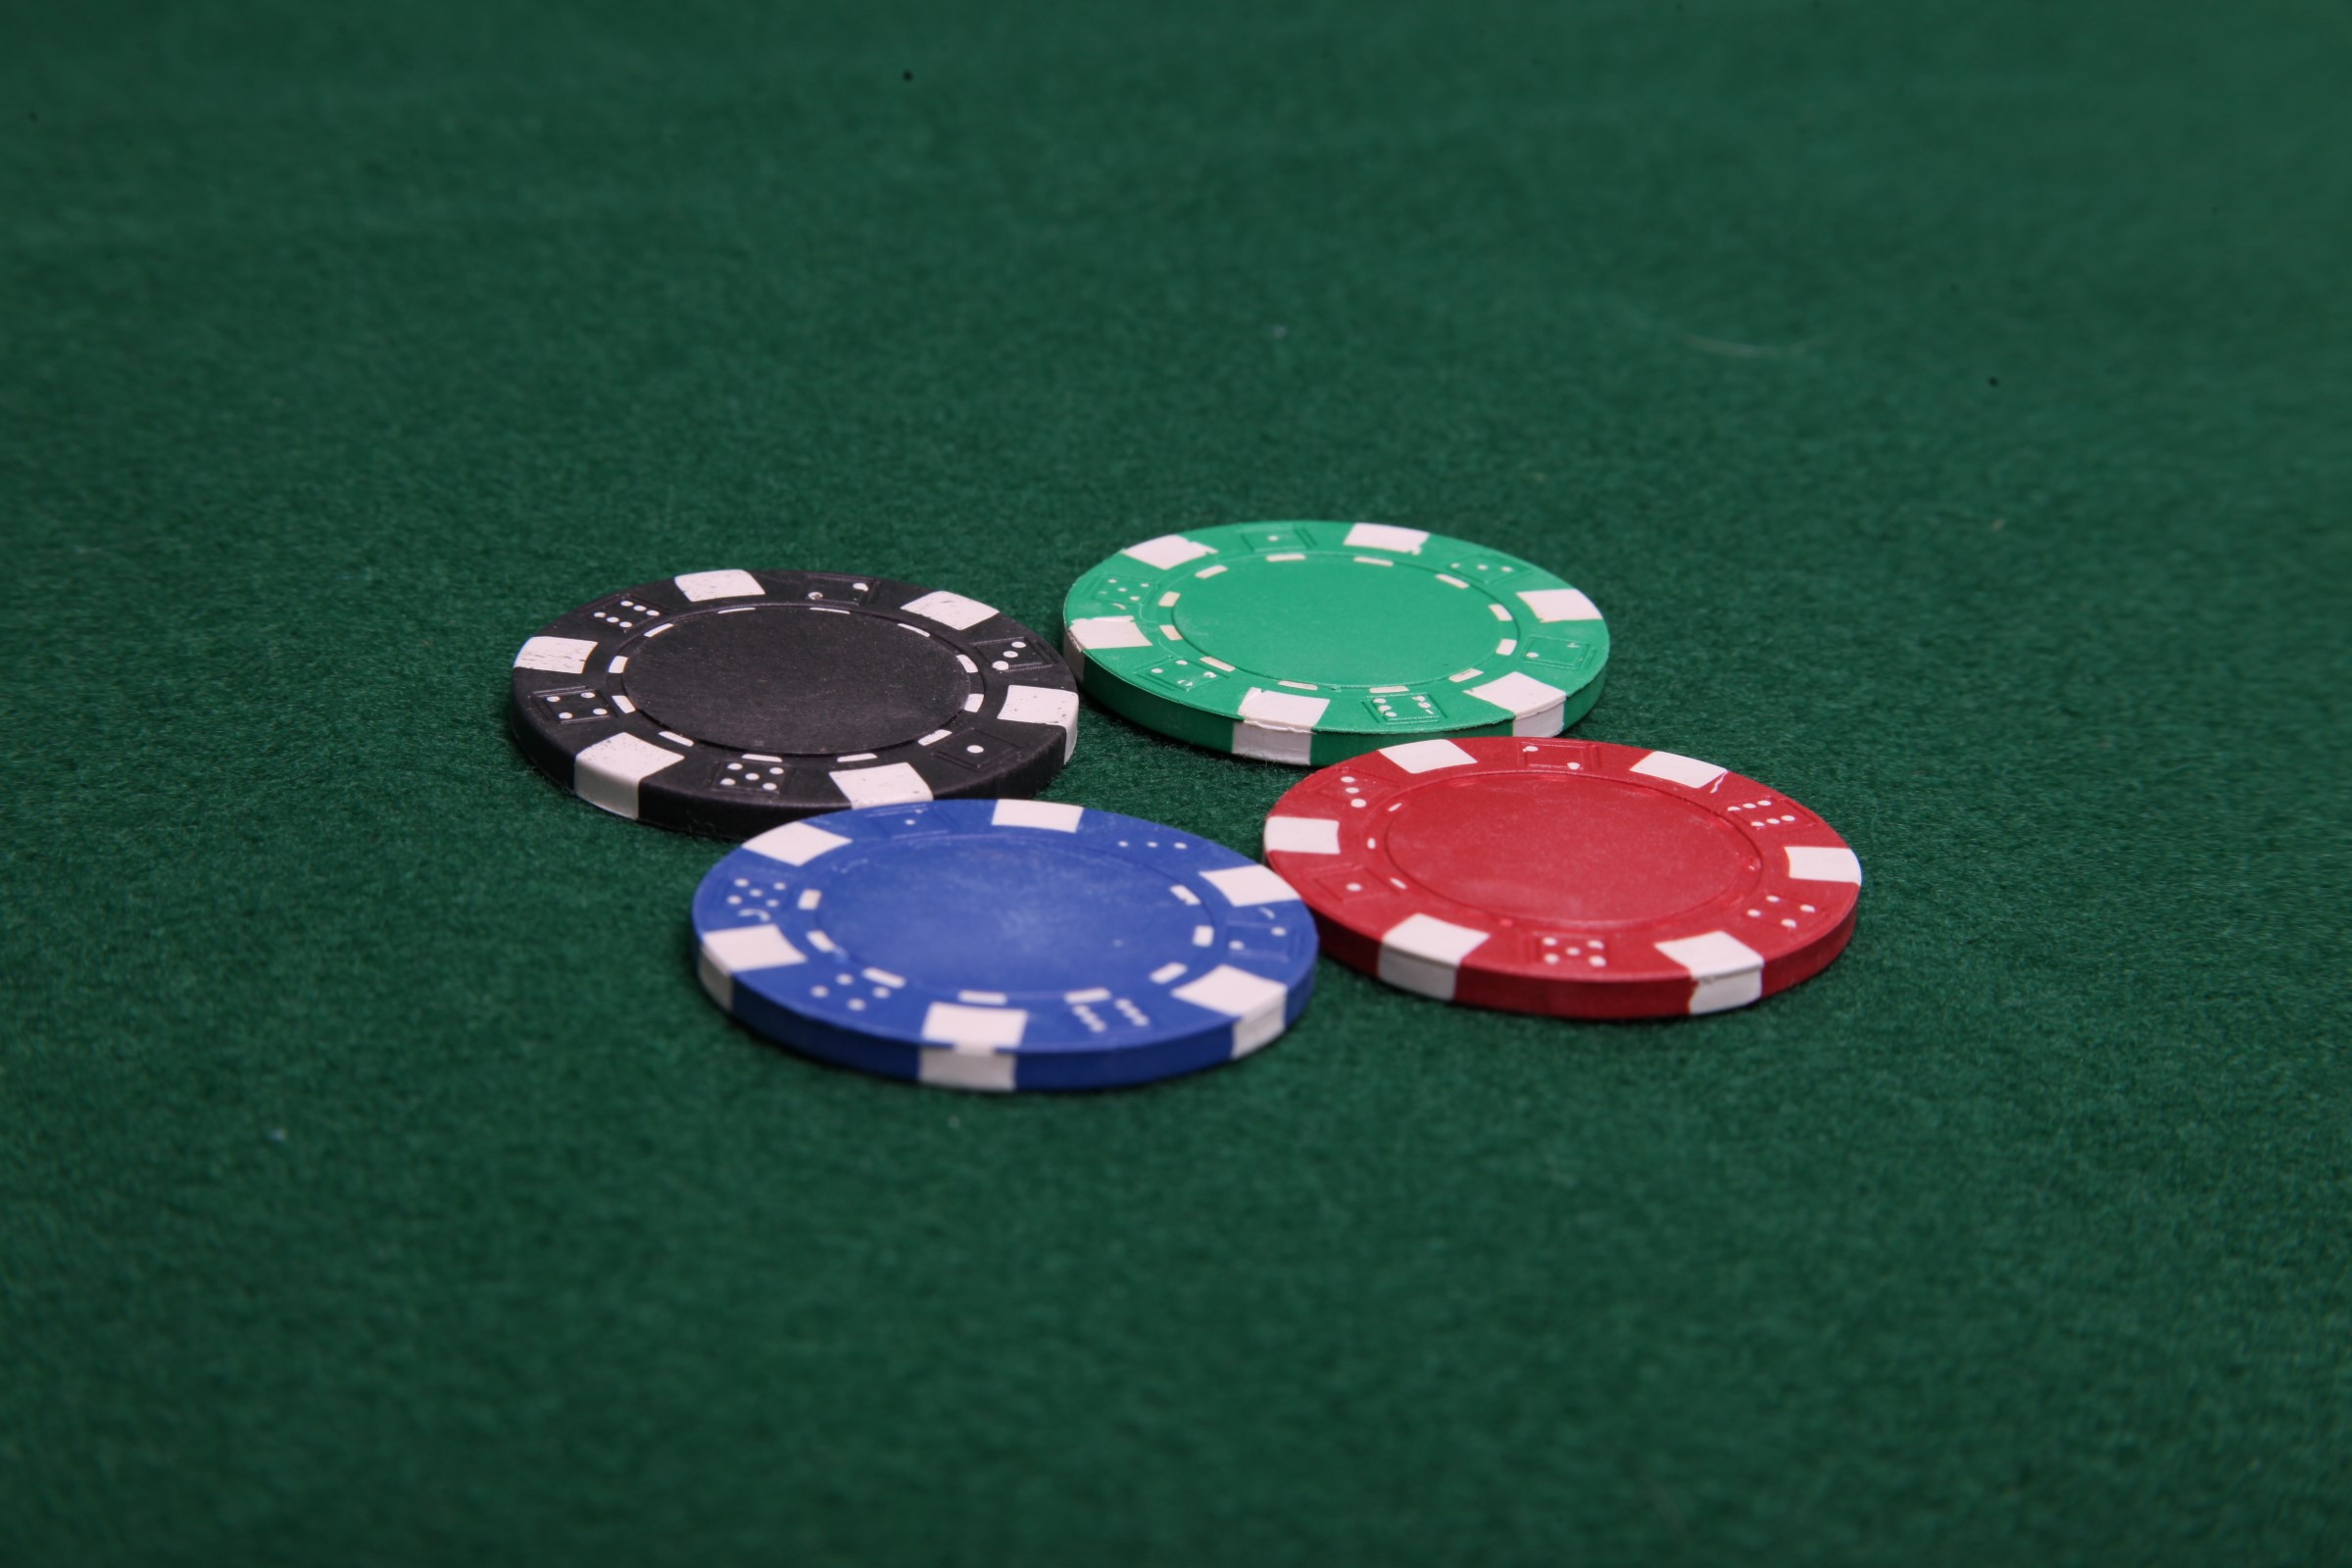 Four Poker Chips, Addiction, Bet, Black, Blue, HQ Photo